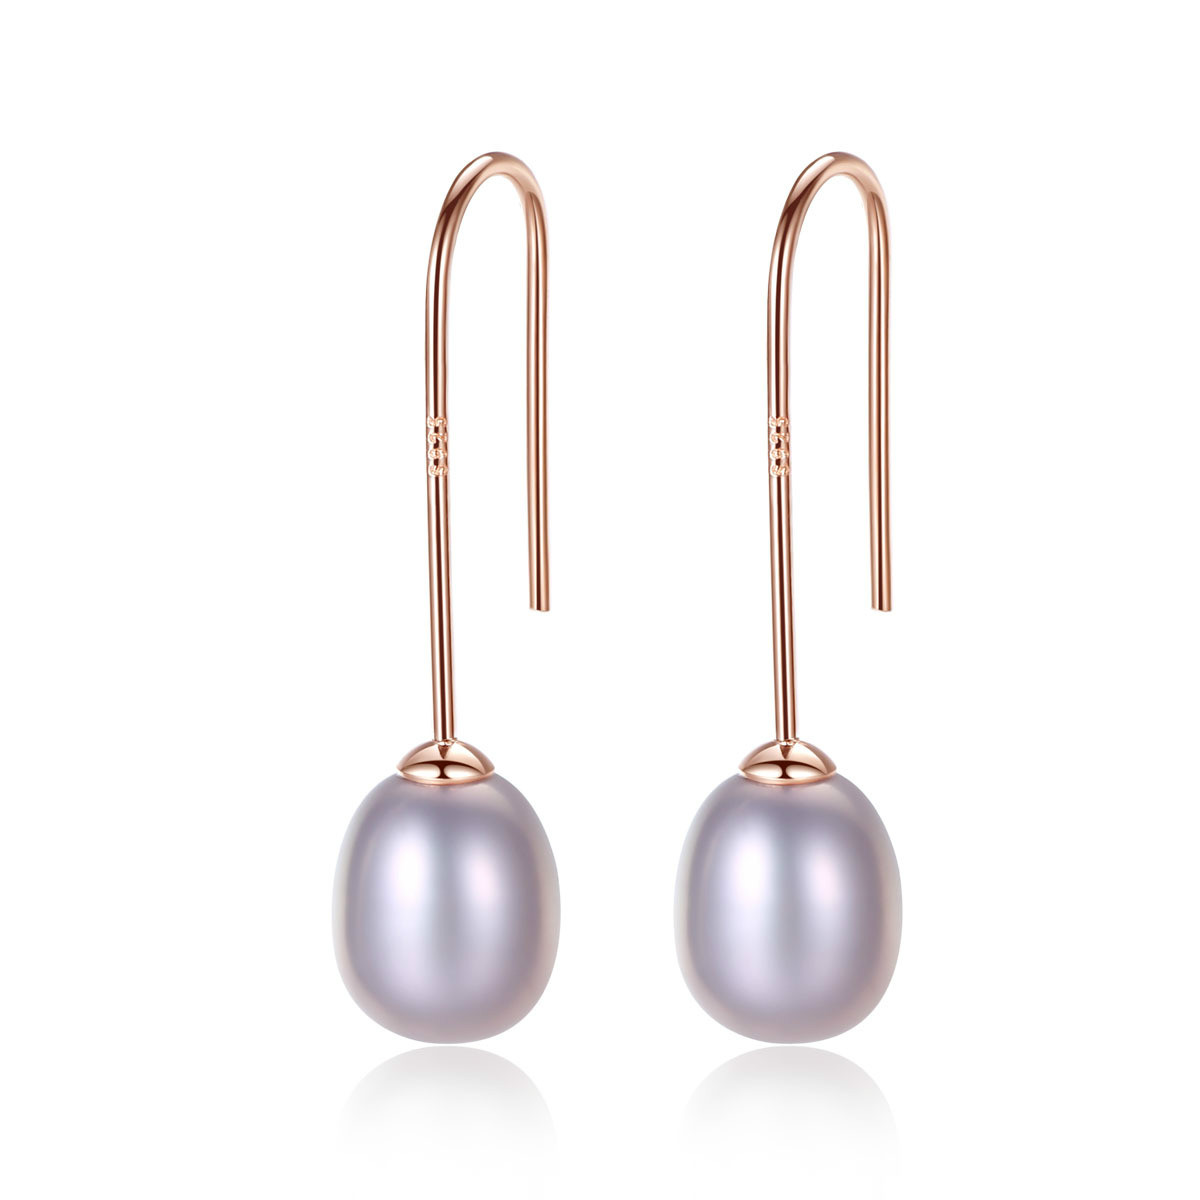 YUEYIN Pearl Earrings 8-9mm Natural S925 Pure Silver Ear Nails Jewelry Wholesale